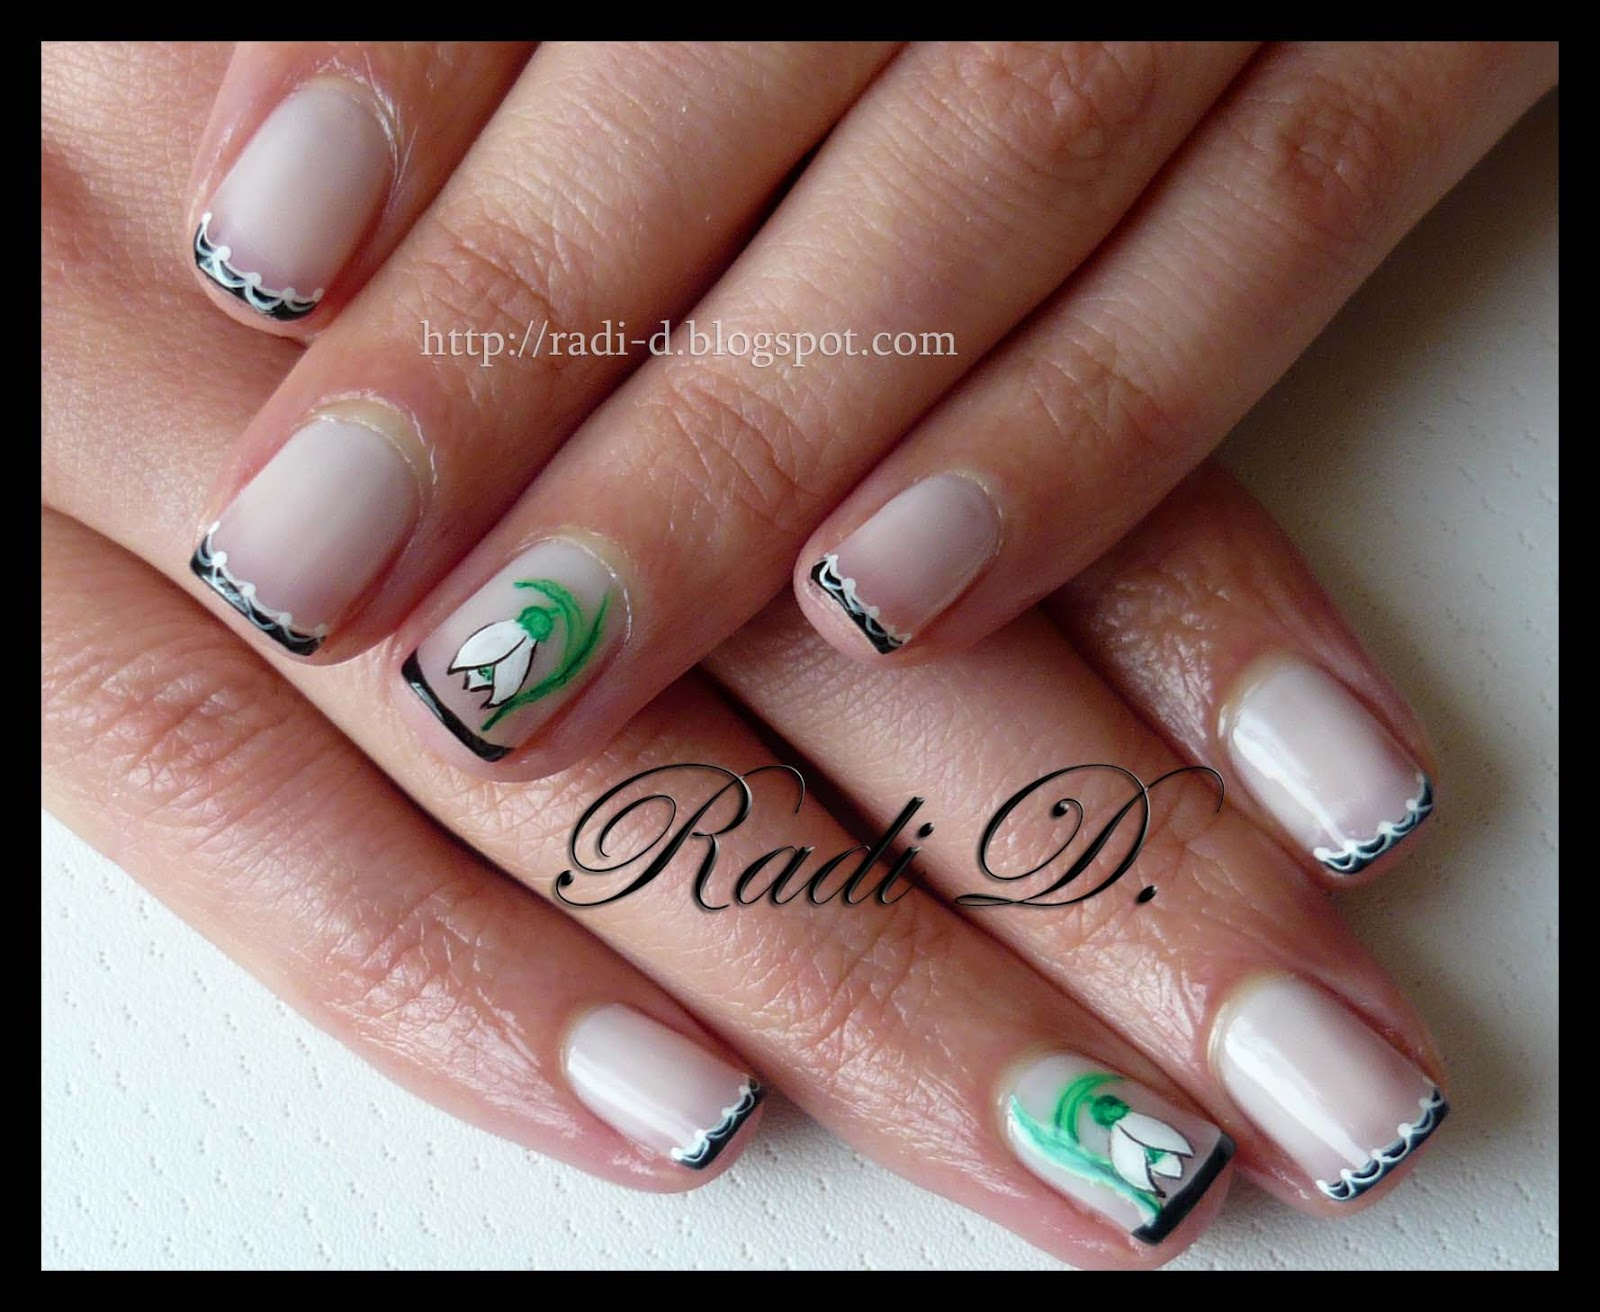 It`s all about nails: Black french on natural nails